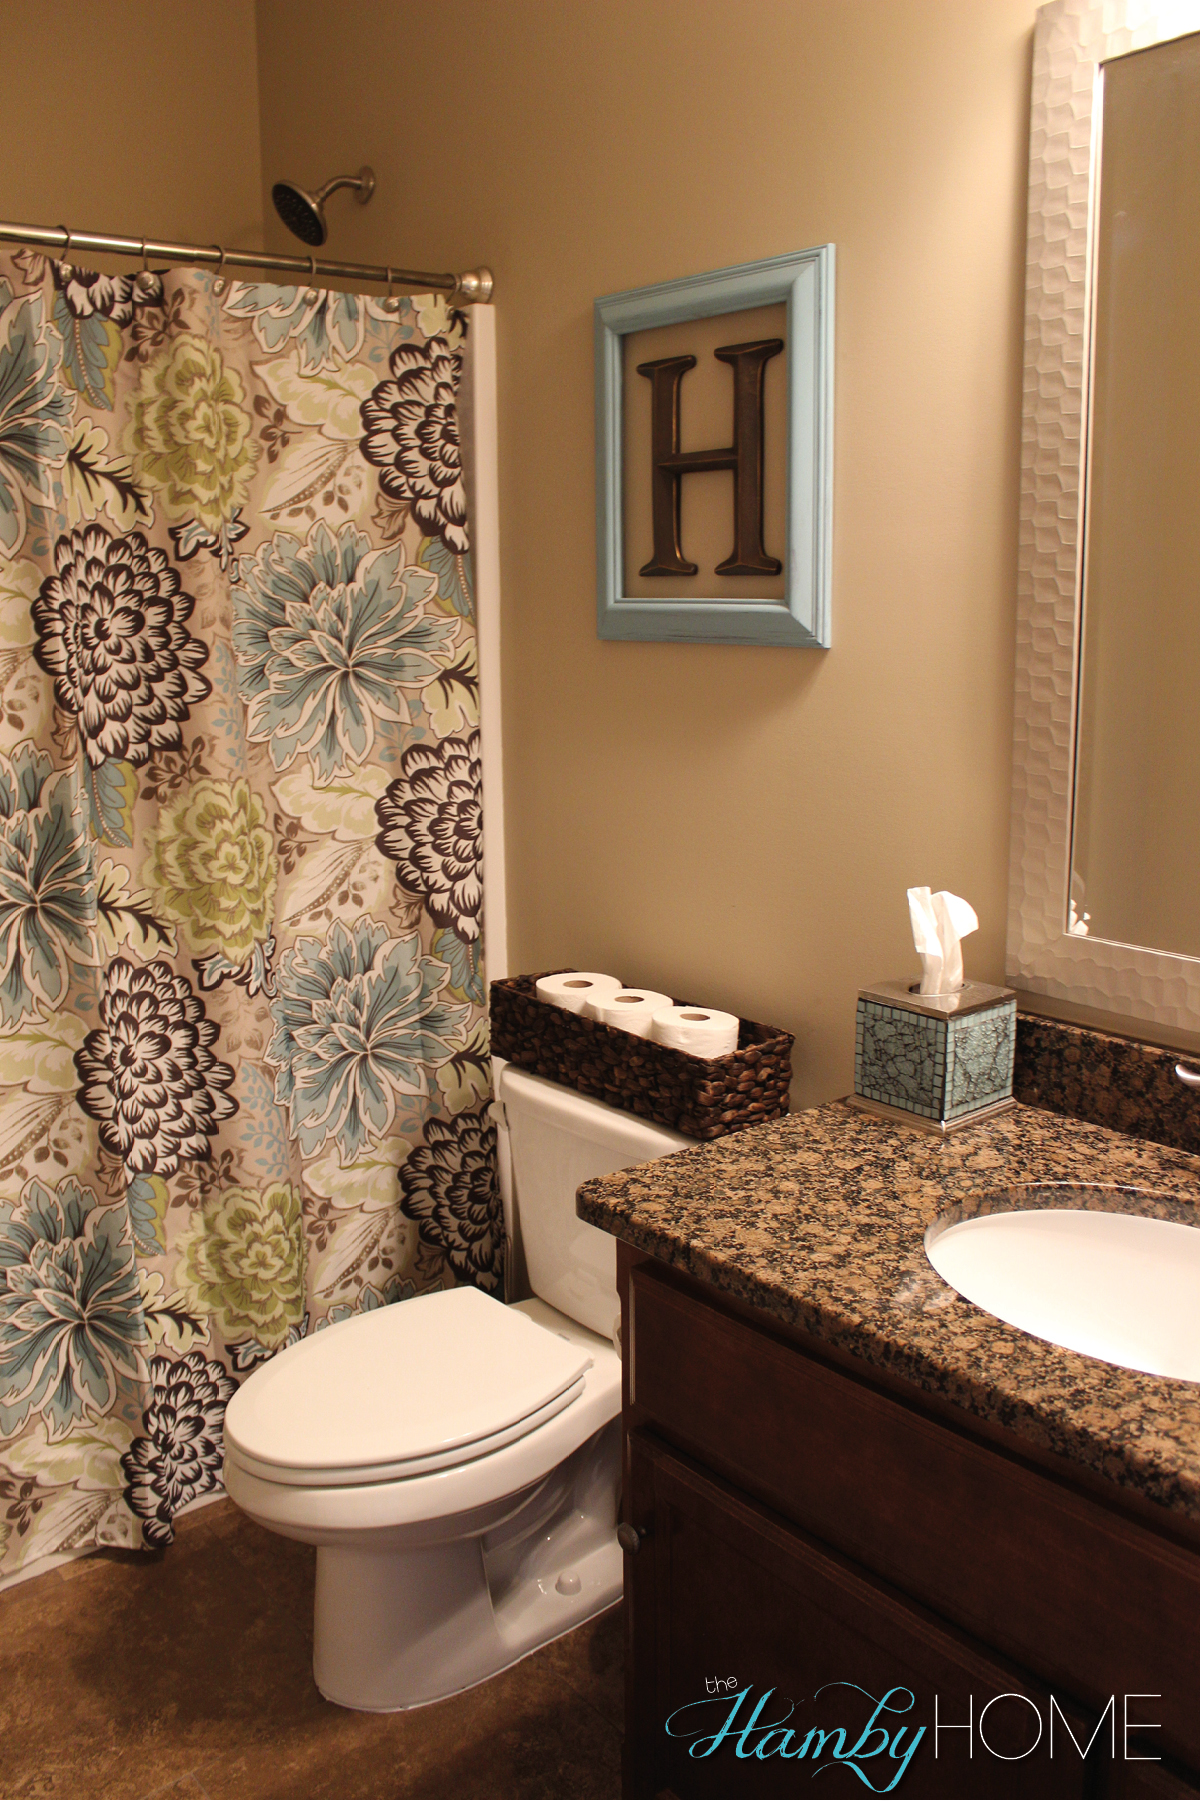 Tgif house tour guest bathroom the hamby home for Bathroom decor pictures